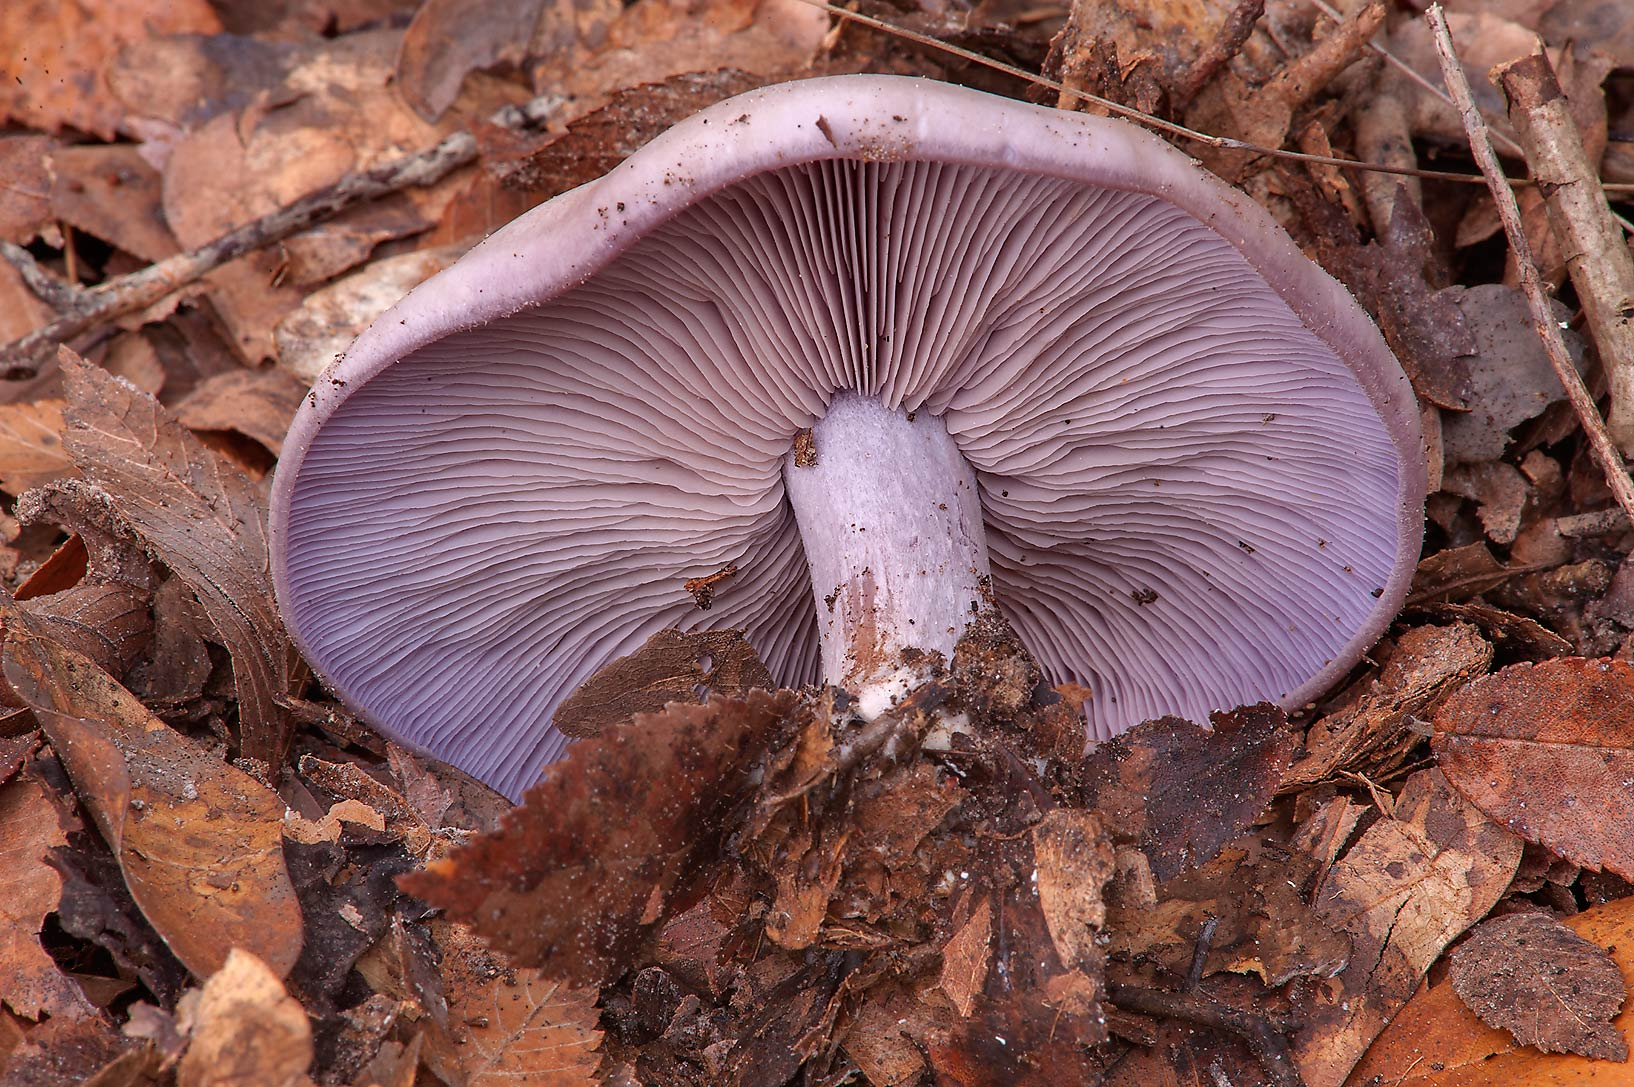 Violet lepista mushroom on Iron Bridge Trail in Lick Creek Park. College Station, Texas